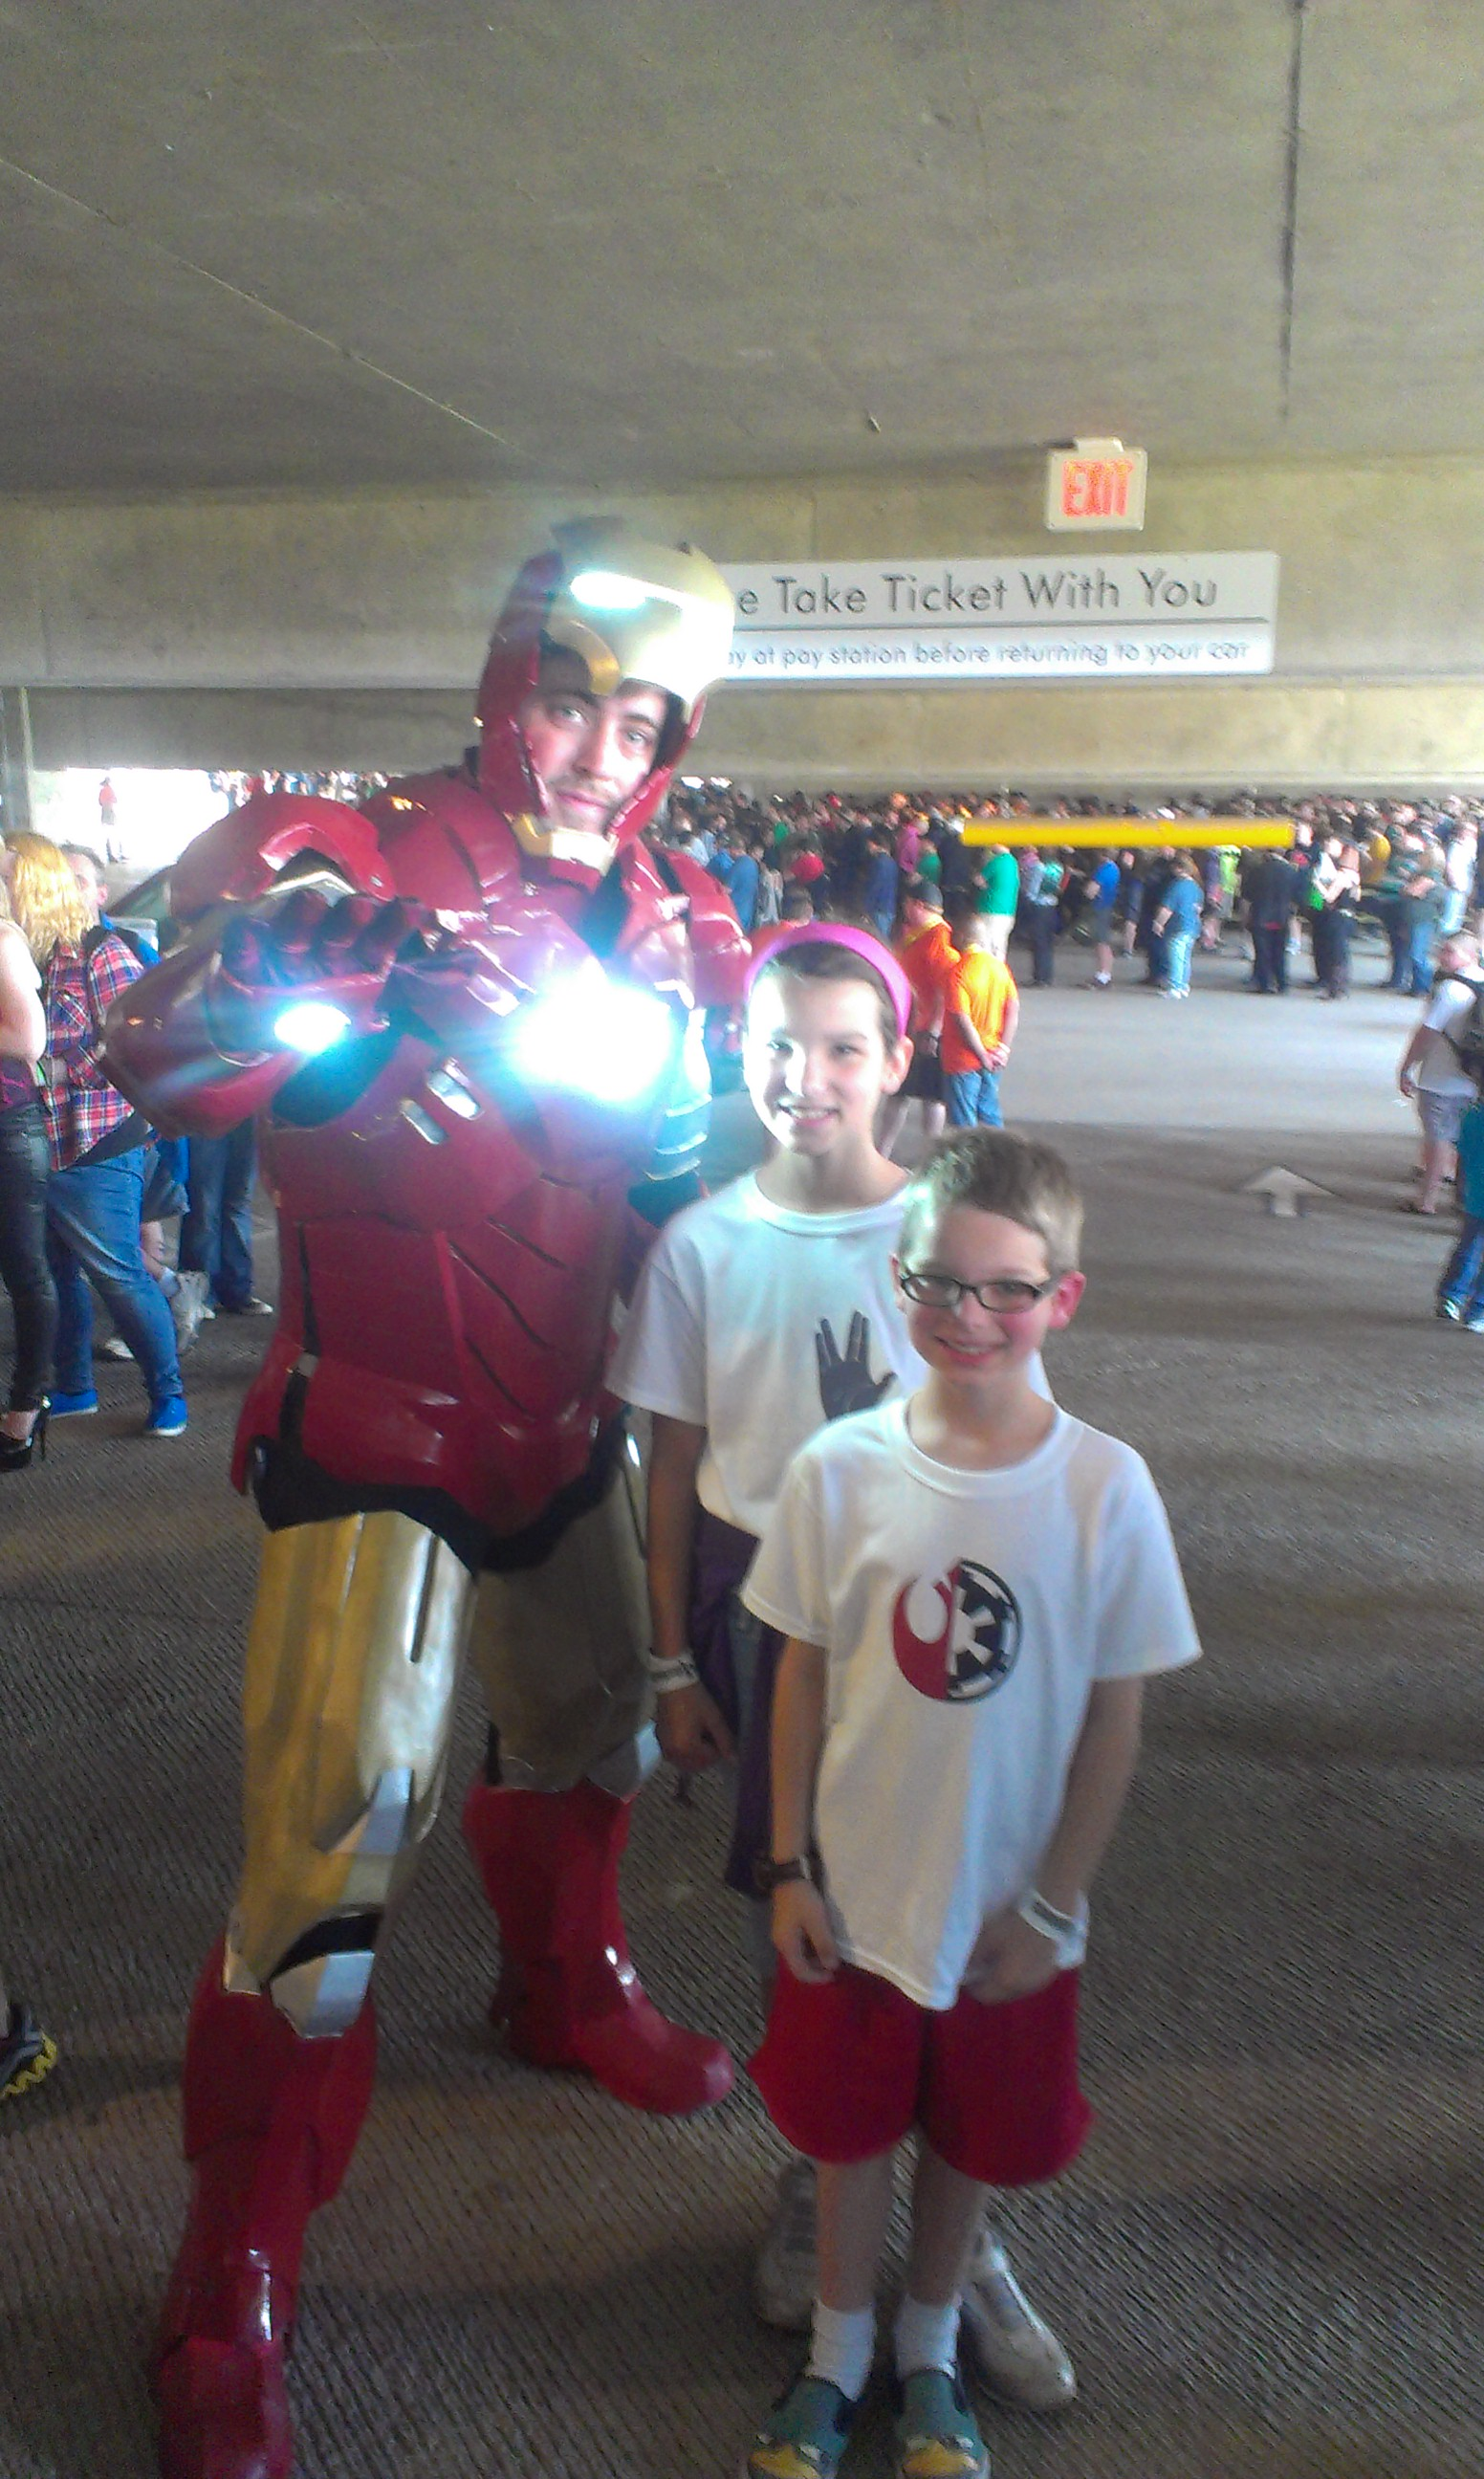 We had a nearly 3 hour wait to get inside the building, but at least Iron Man came by!